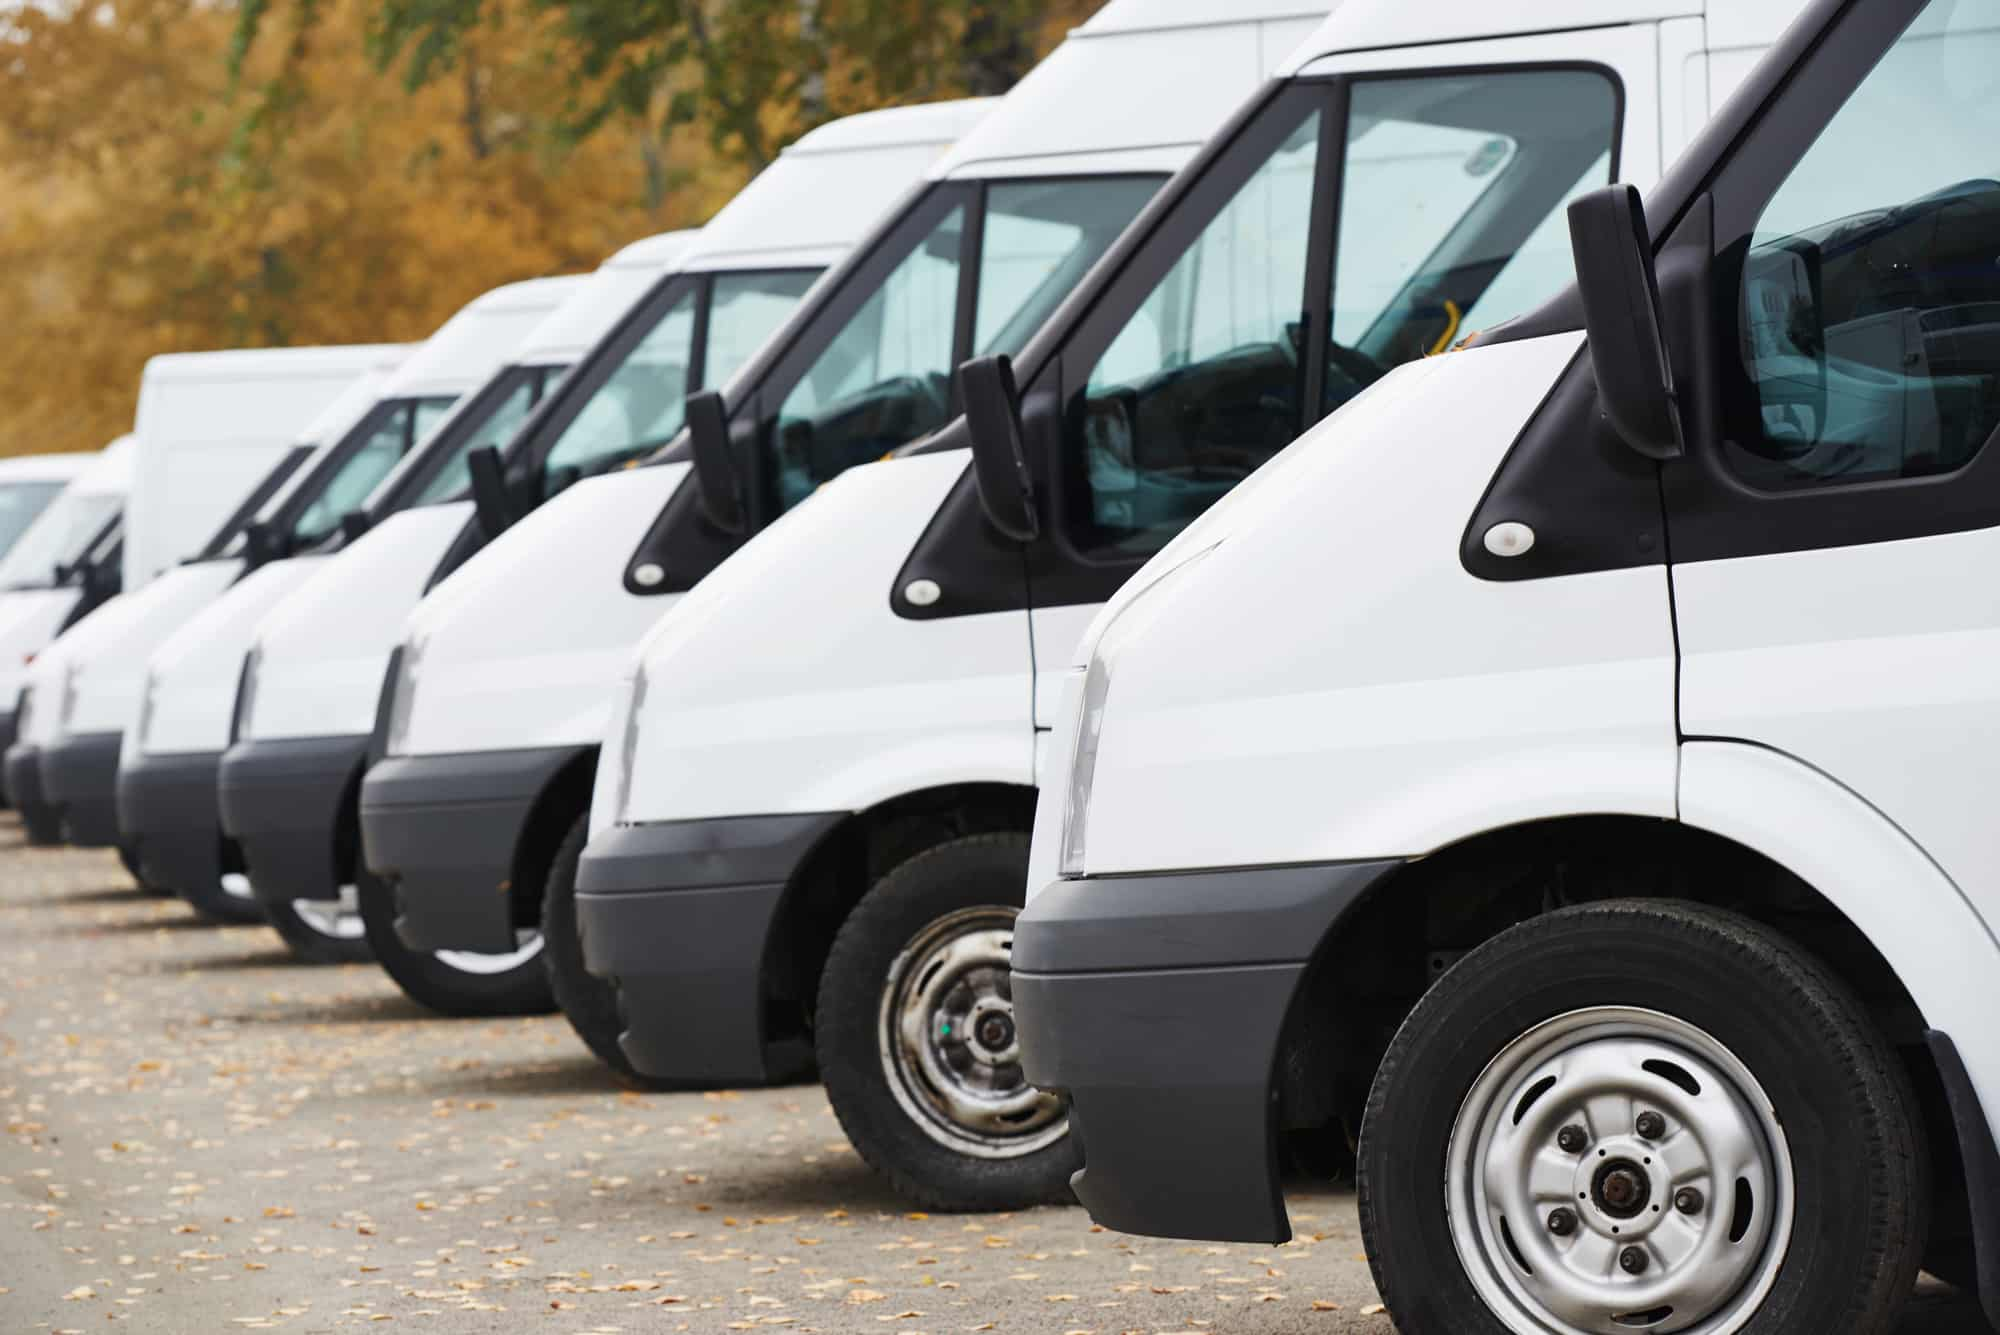 image of a fleet of white vans all in a row